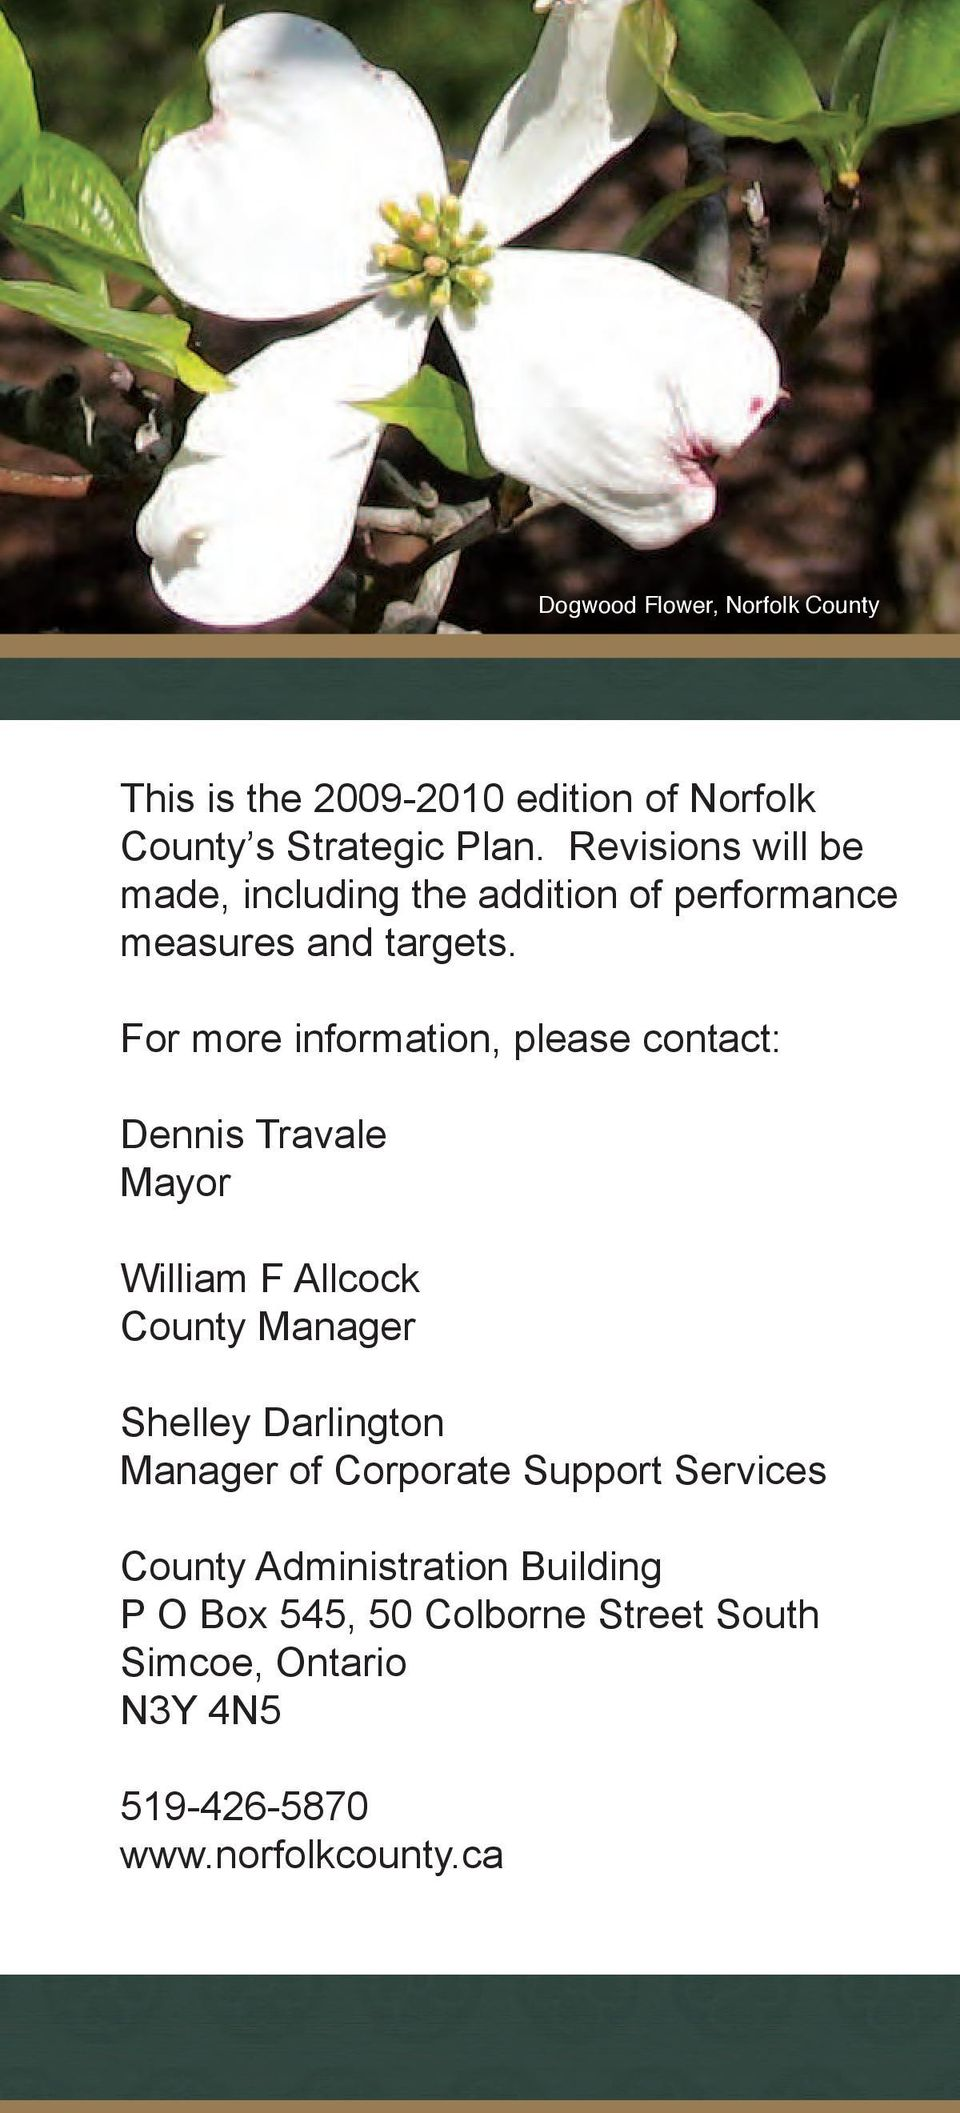 For more information, please contact: Dennis Travale Mayor William F Allcock County Manager Shelley Darlington